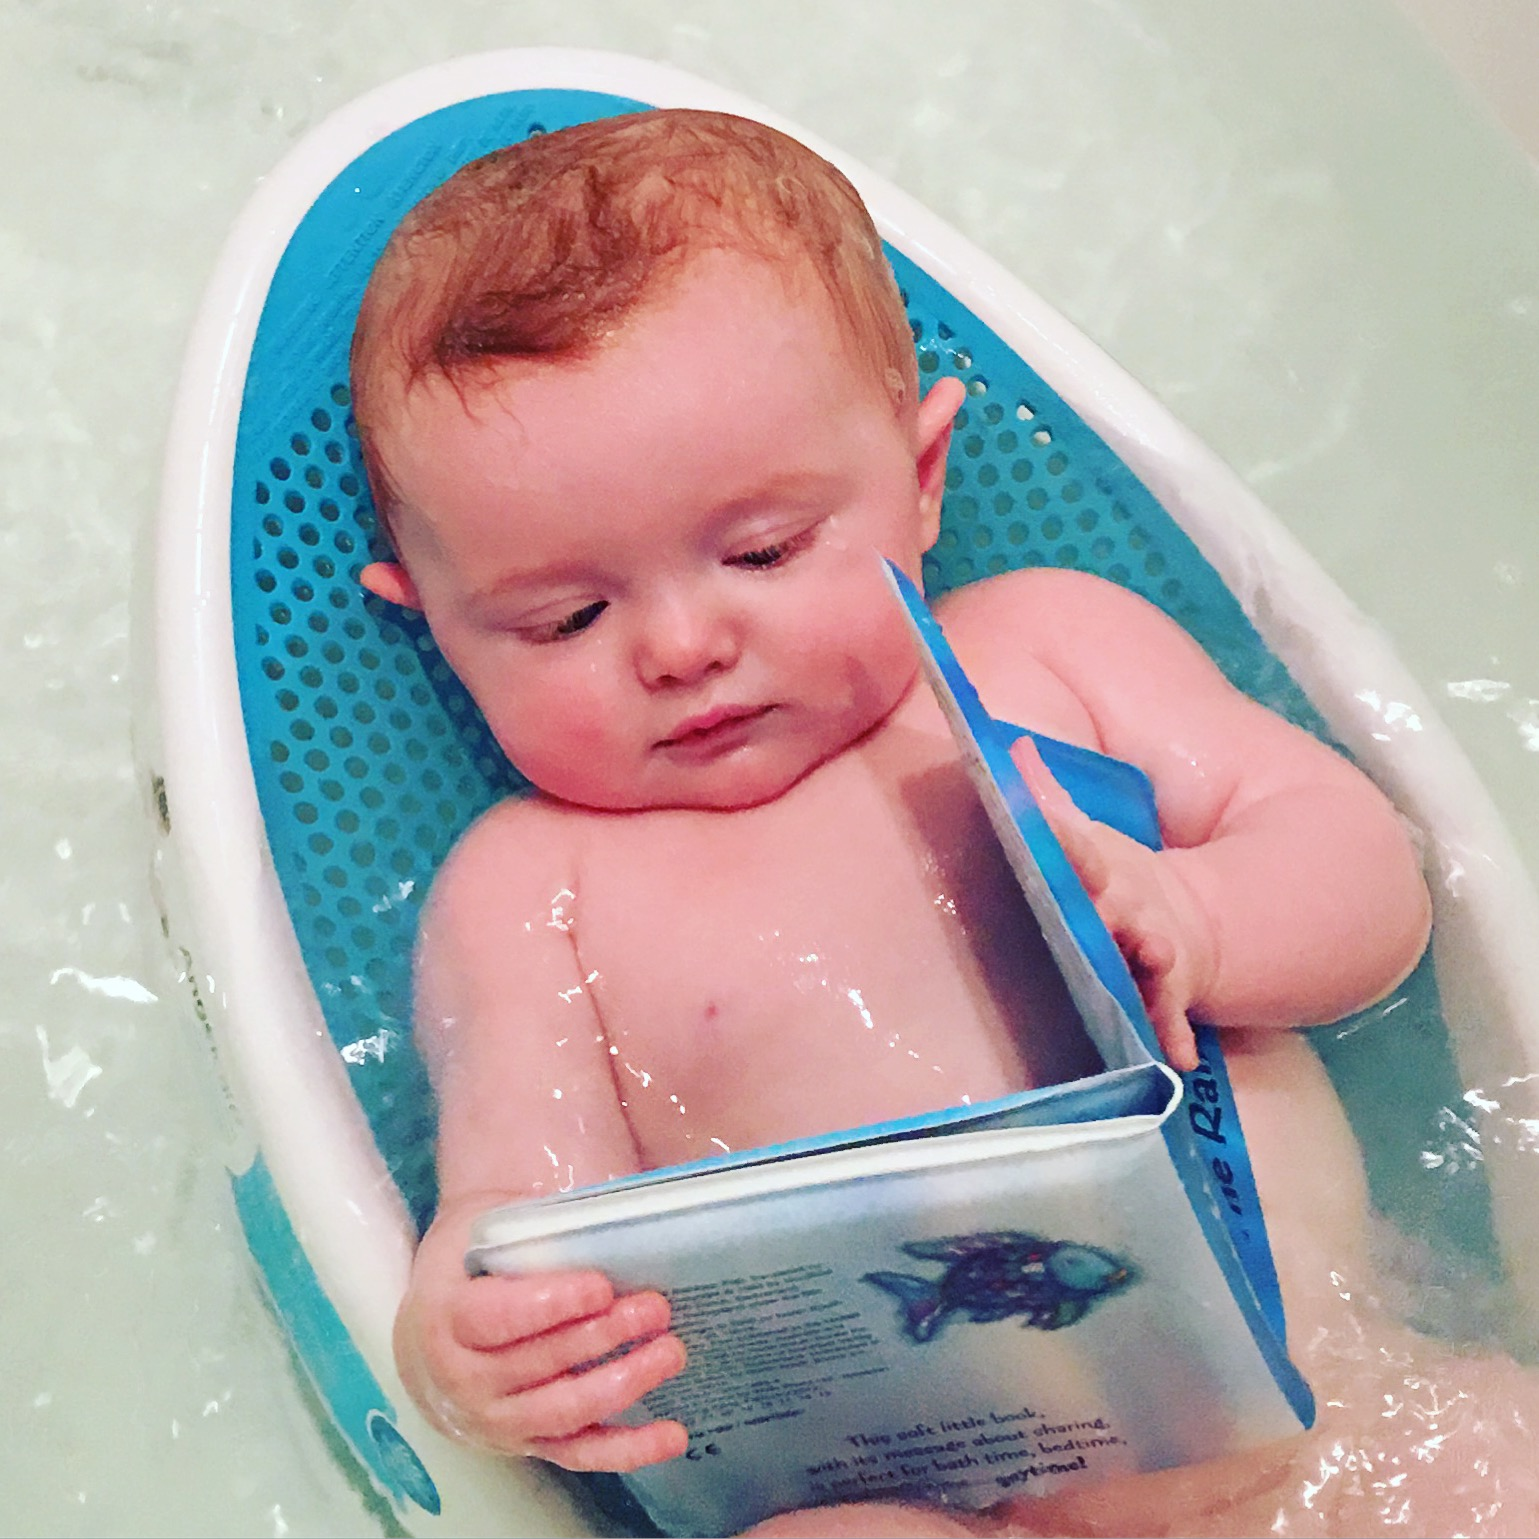 And she reads like her mama in the bath